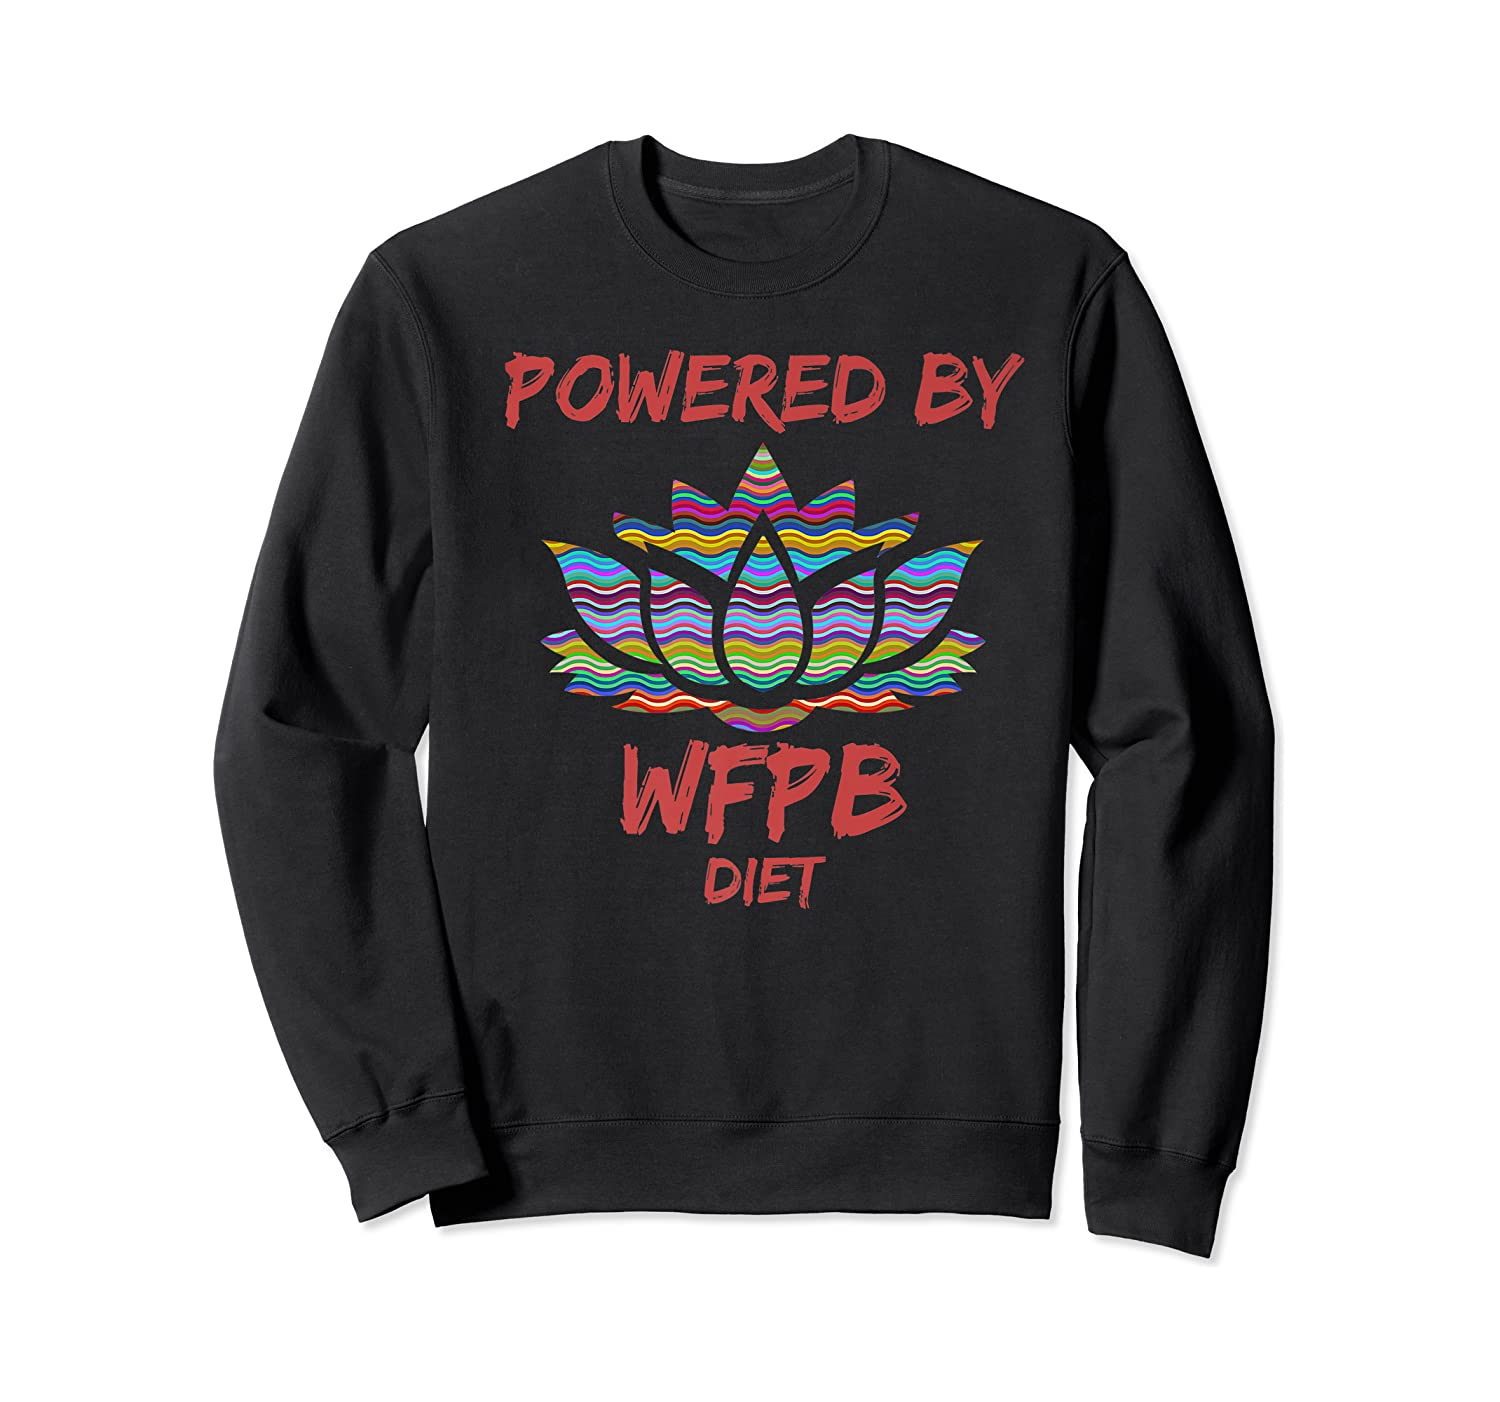 Wfpb , Powered By Whole Food Plant Based Diet Design Premium T-shirt Crewneck Sweater